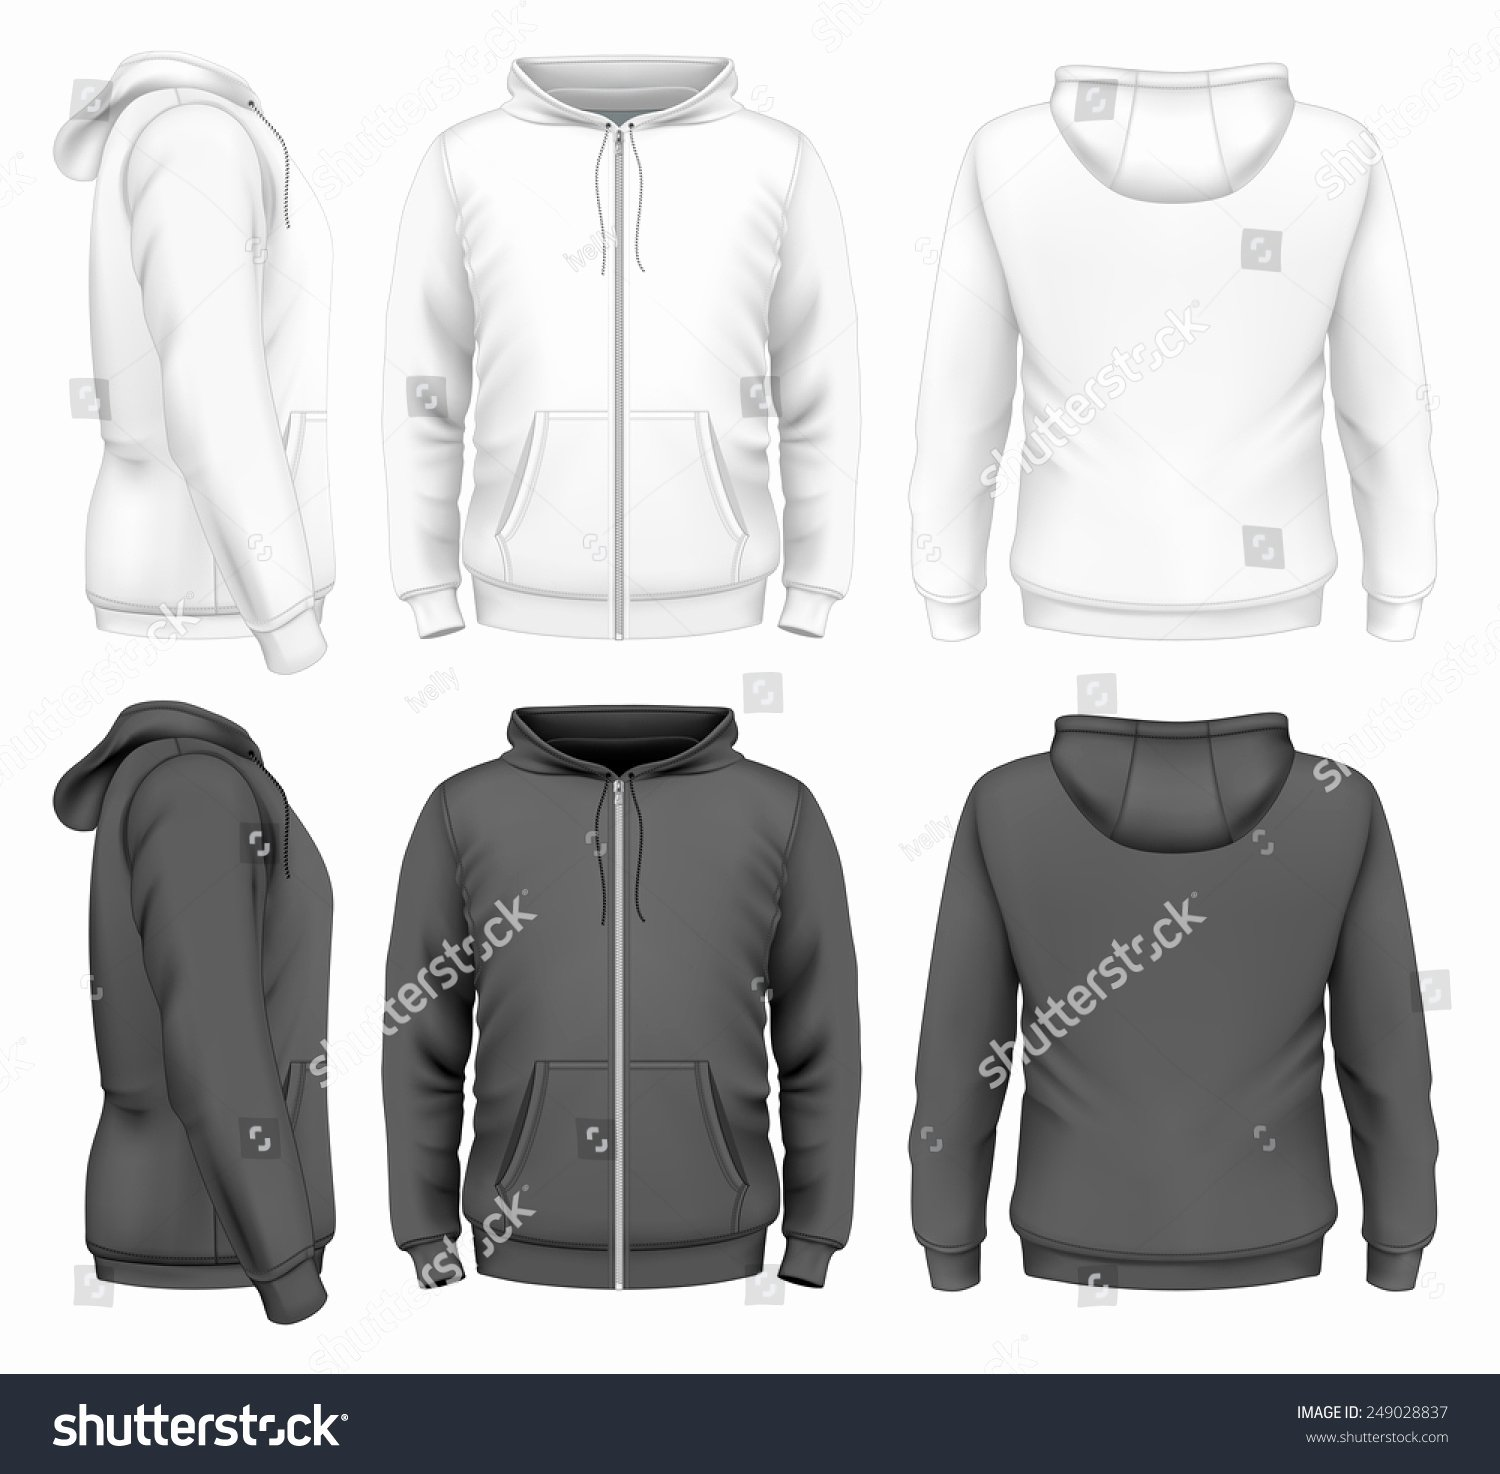 Hoodie Front and Back Elegant Mens Zip Hoo White Black Design Stock Vector Shutterstock